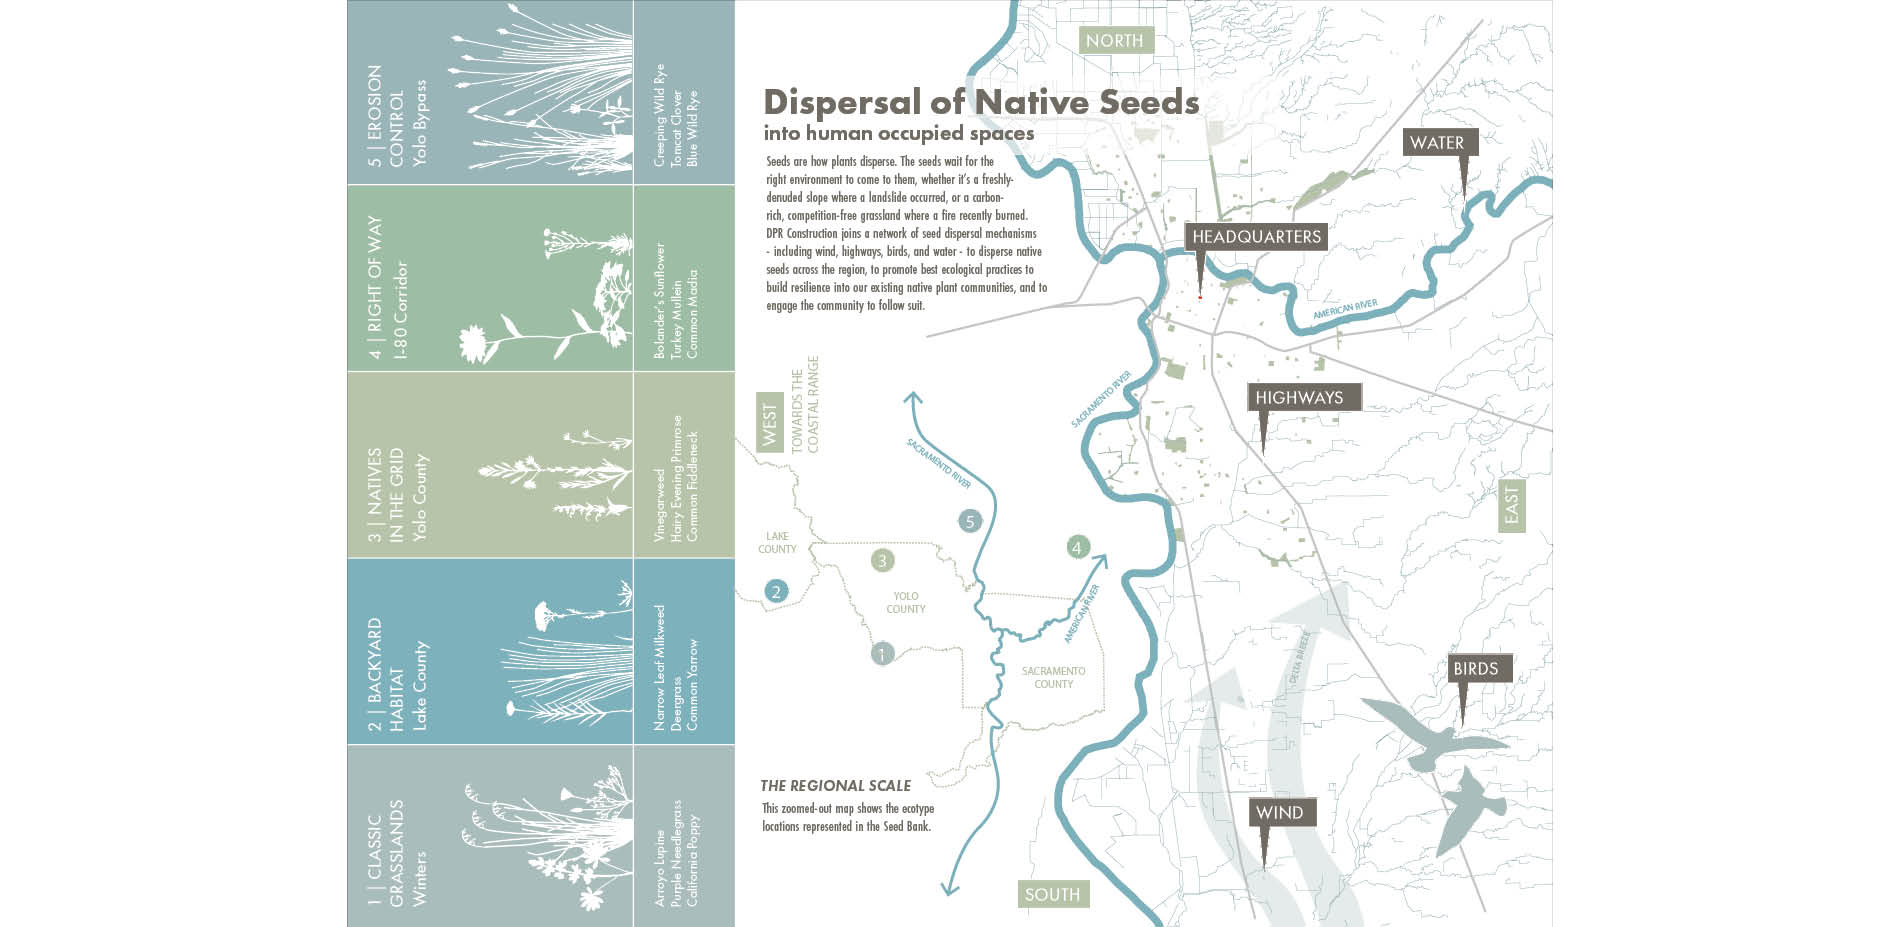 Dispersal of Native Seeds